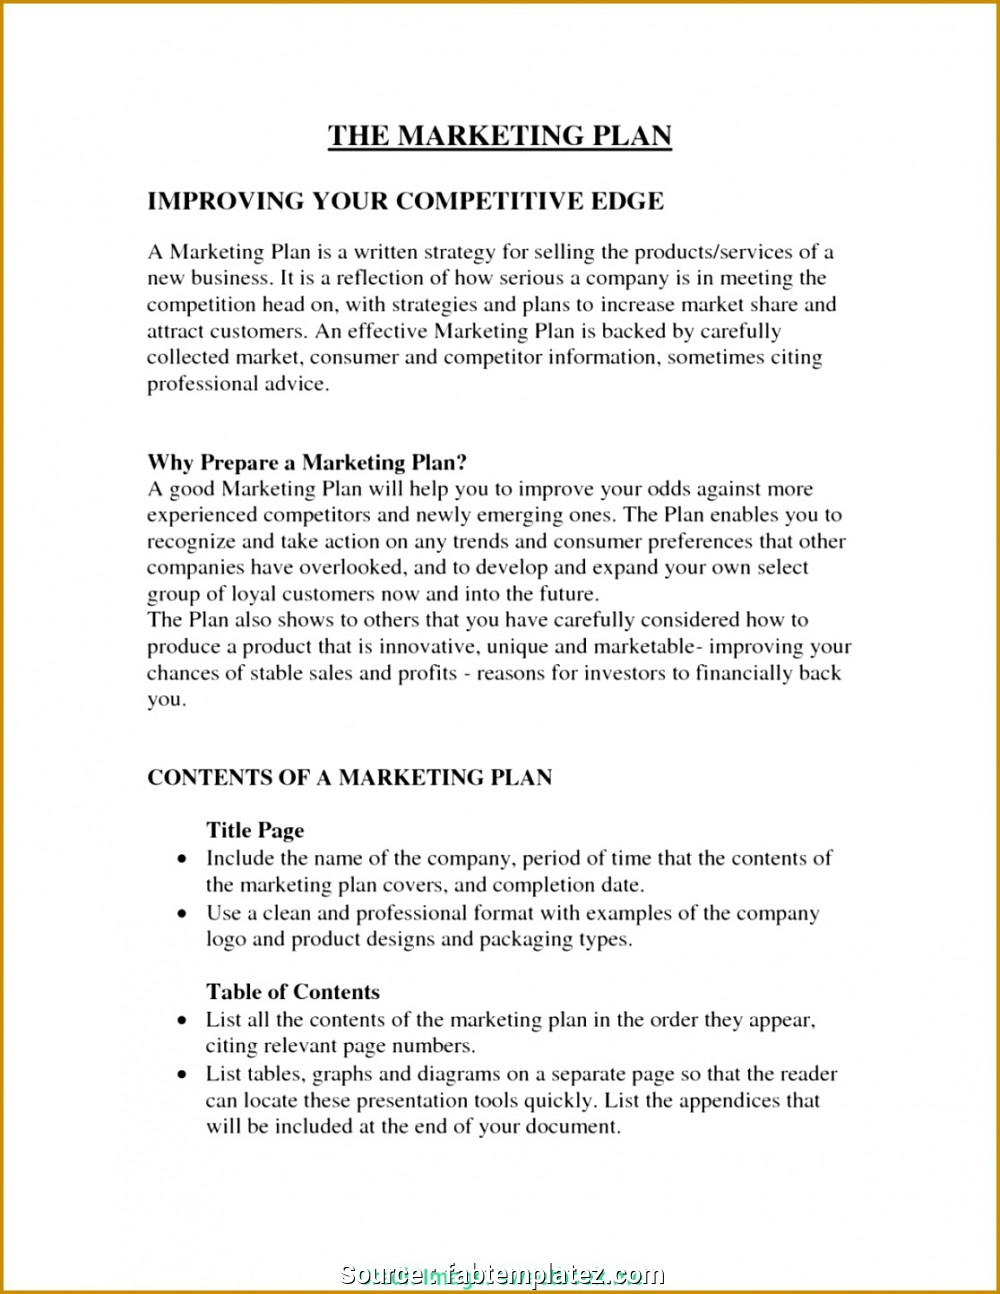 Music Usiness Plan Plans Est Musician Marketing Template Pertaining To Music Business Plan Template Free Download